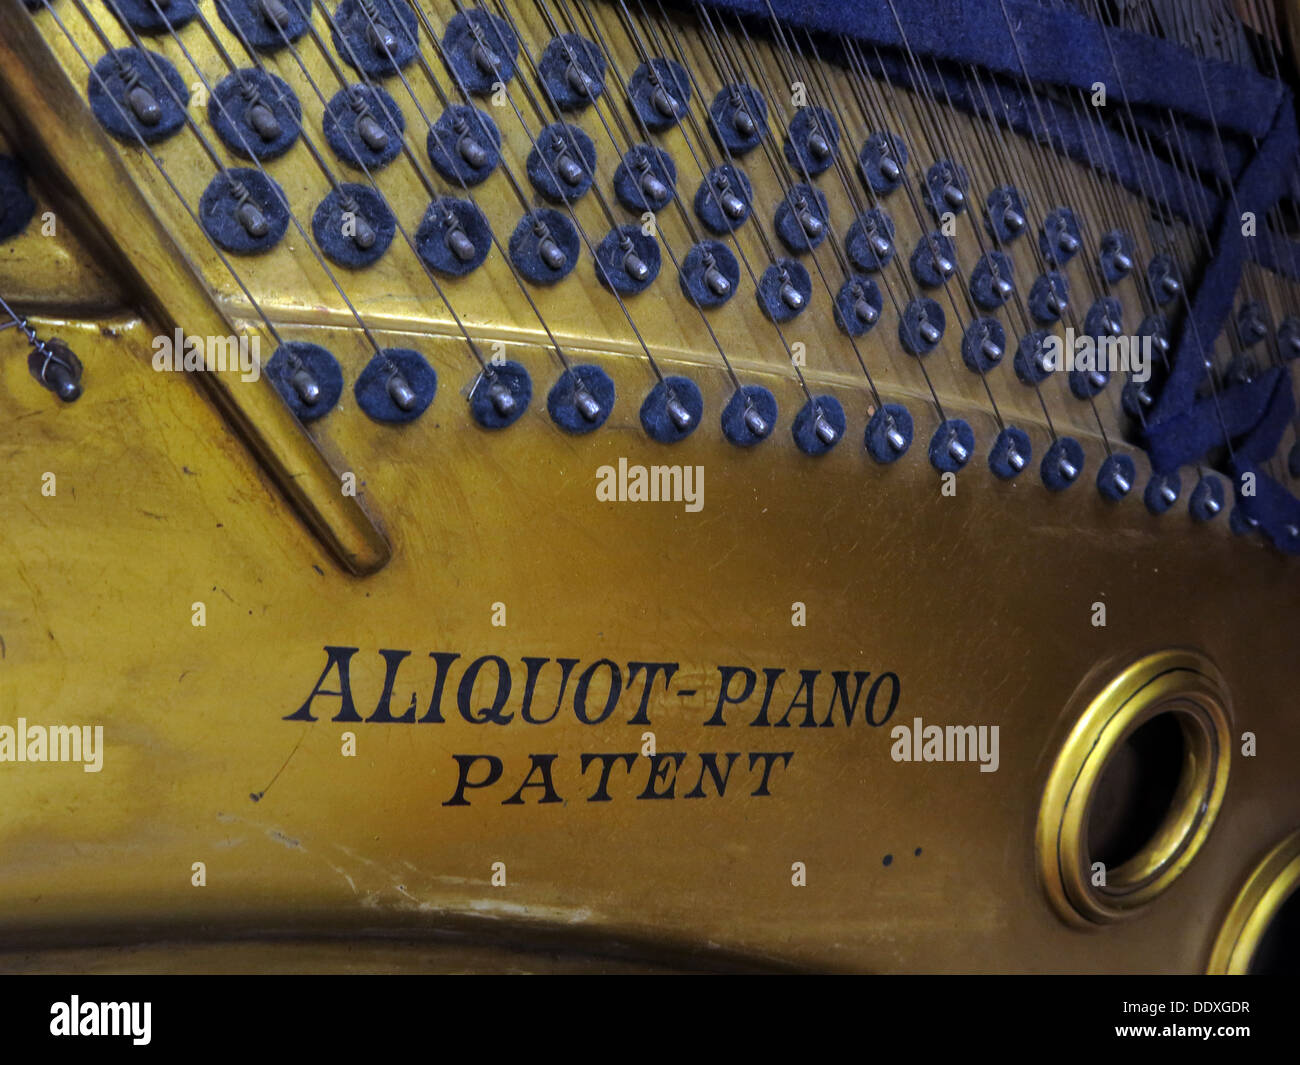 Bluthner Piano detail 37400, keys, mechanism, Leipzig, Germany - Stock Image